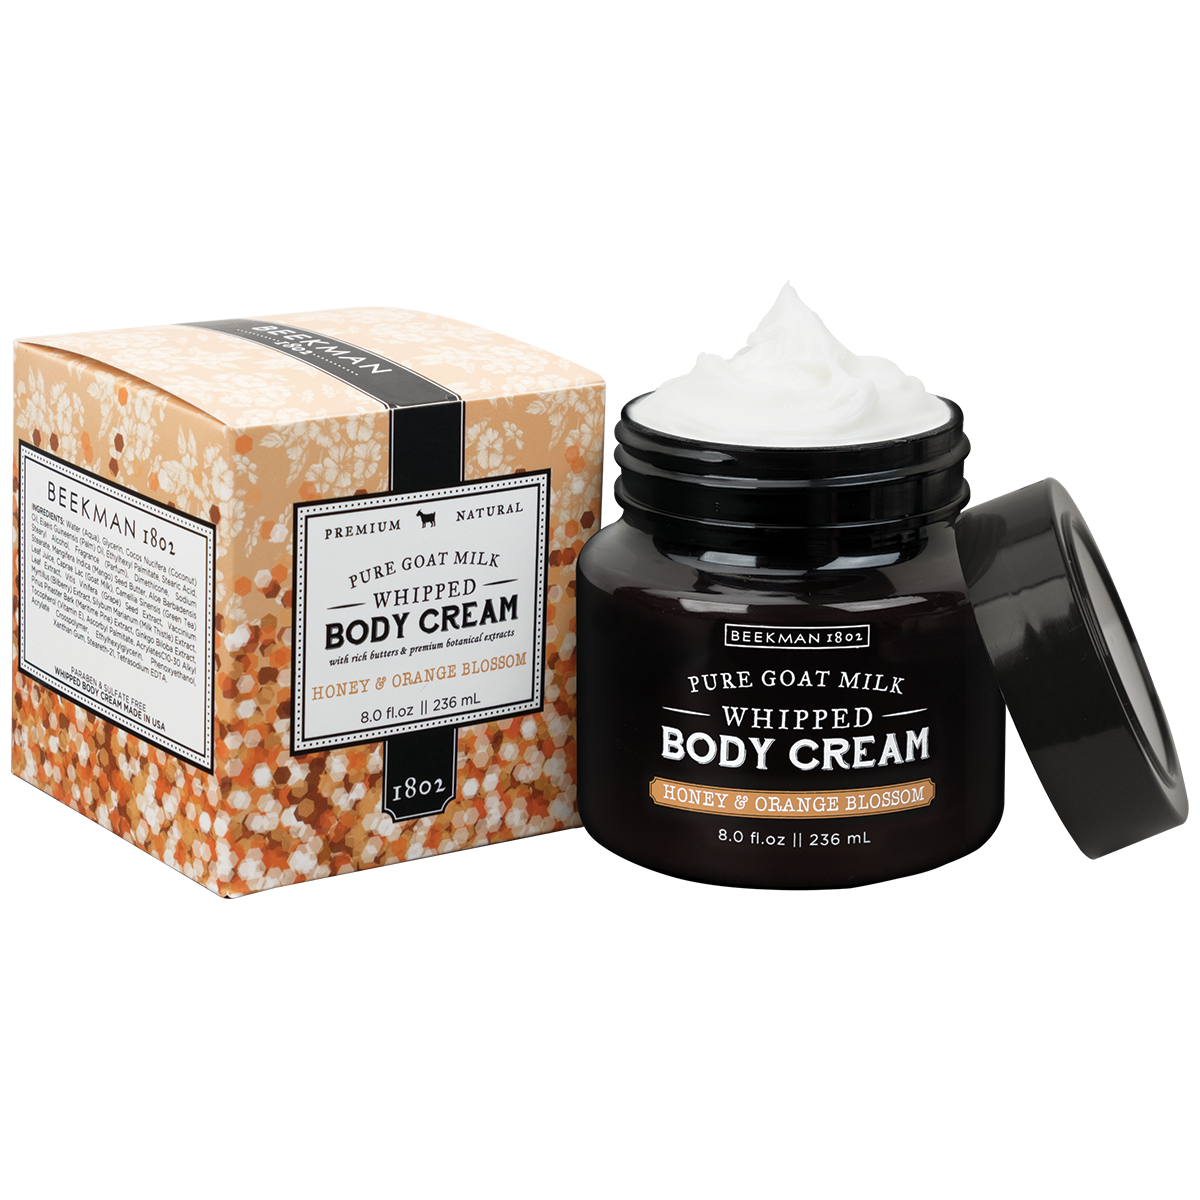 Beekman Honey & Orange Blossom Whipped Body Cream